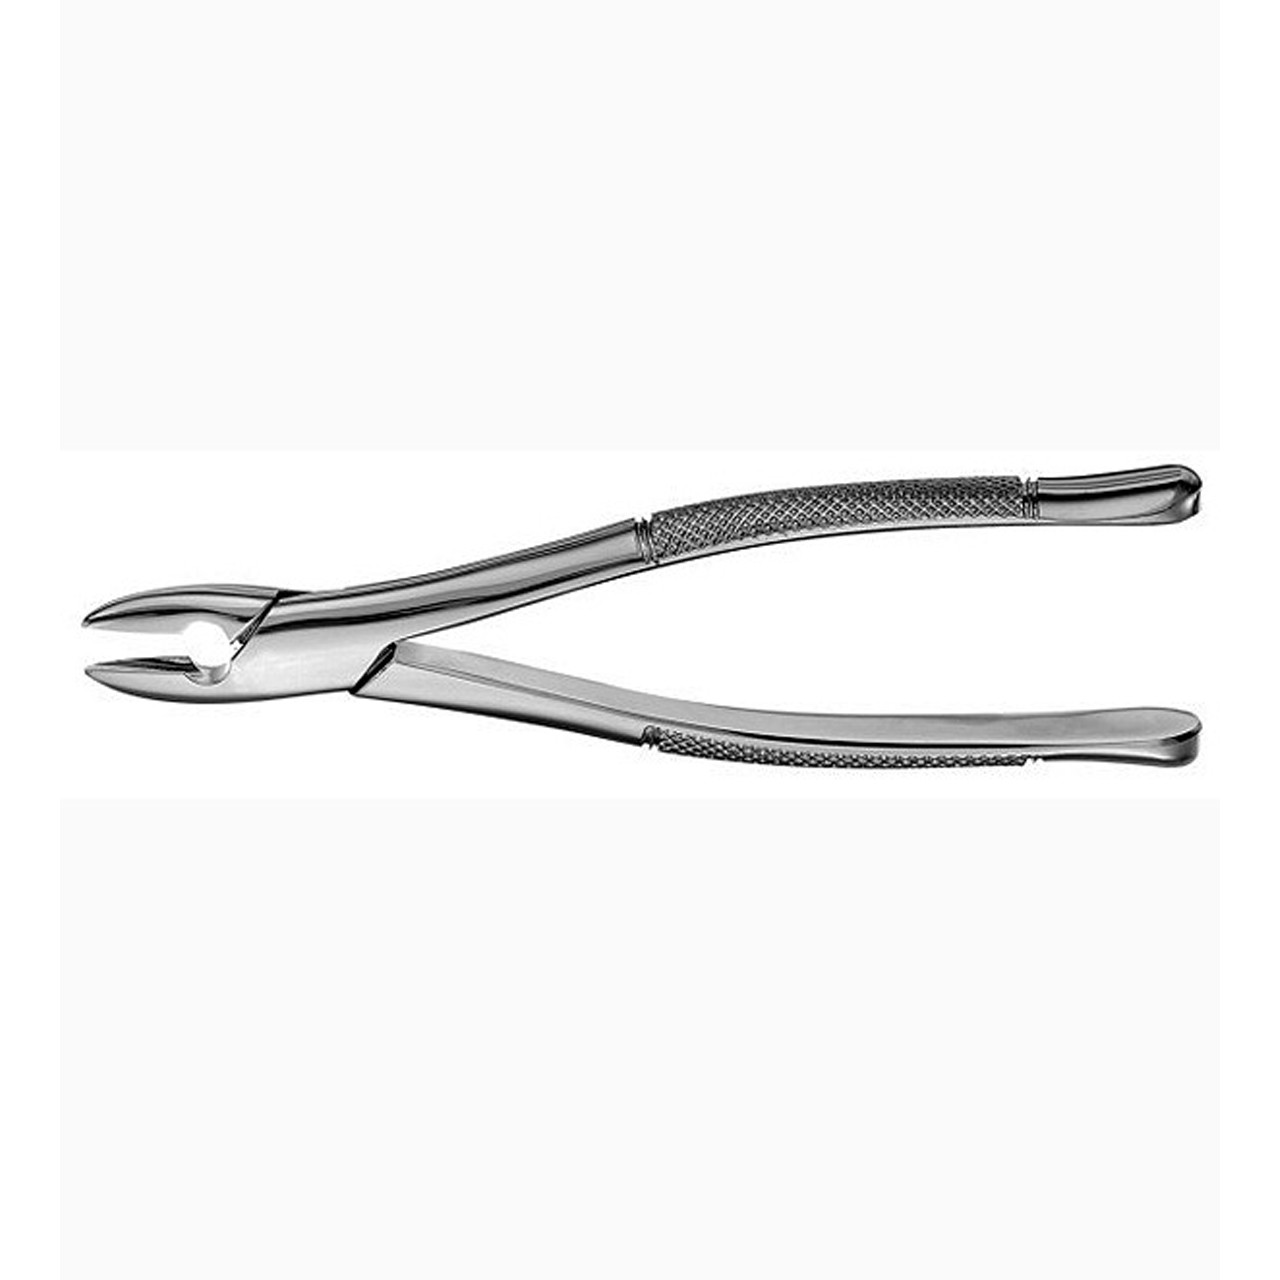 Dental Forceps Upper Central Incisor And Canine